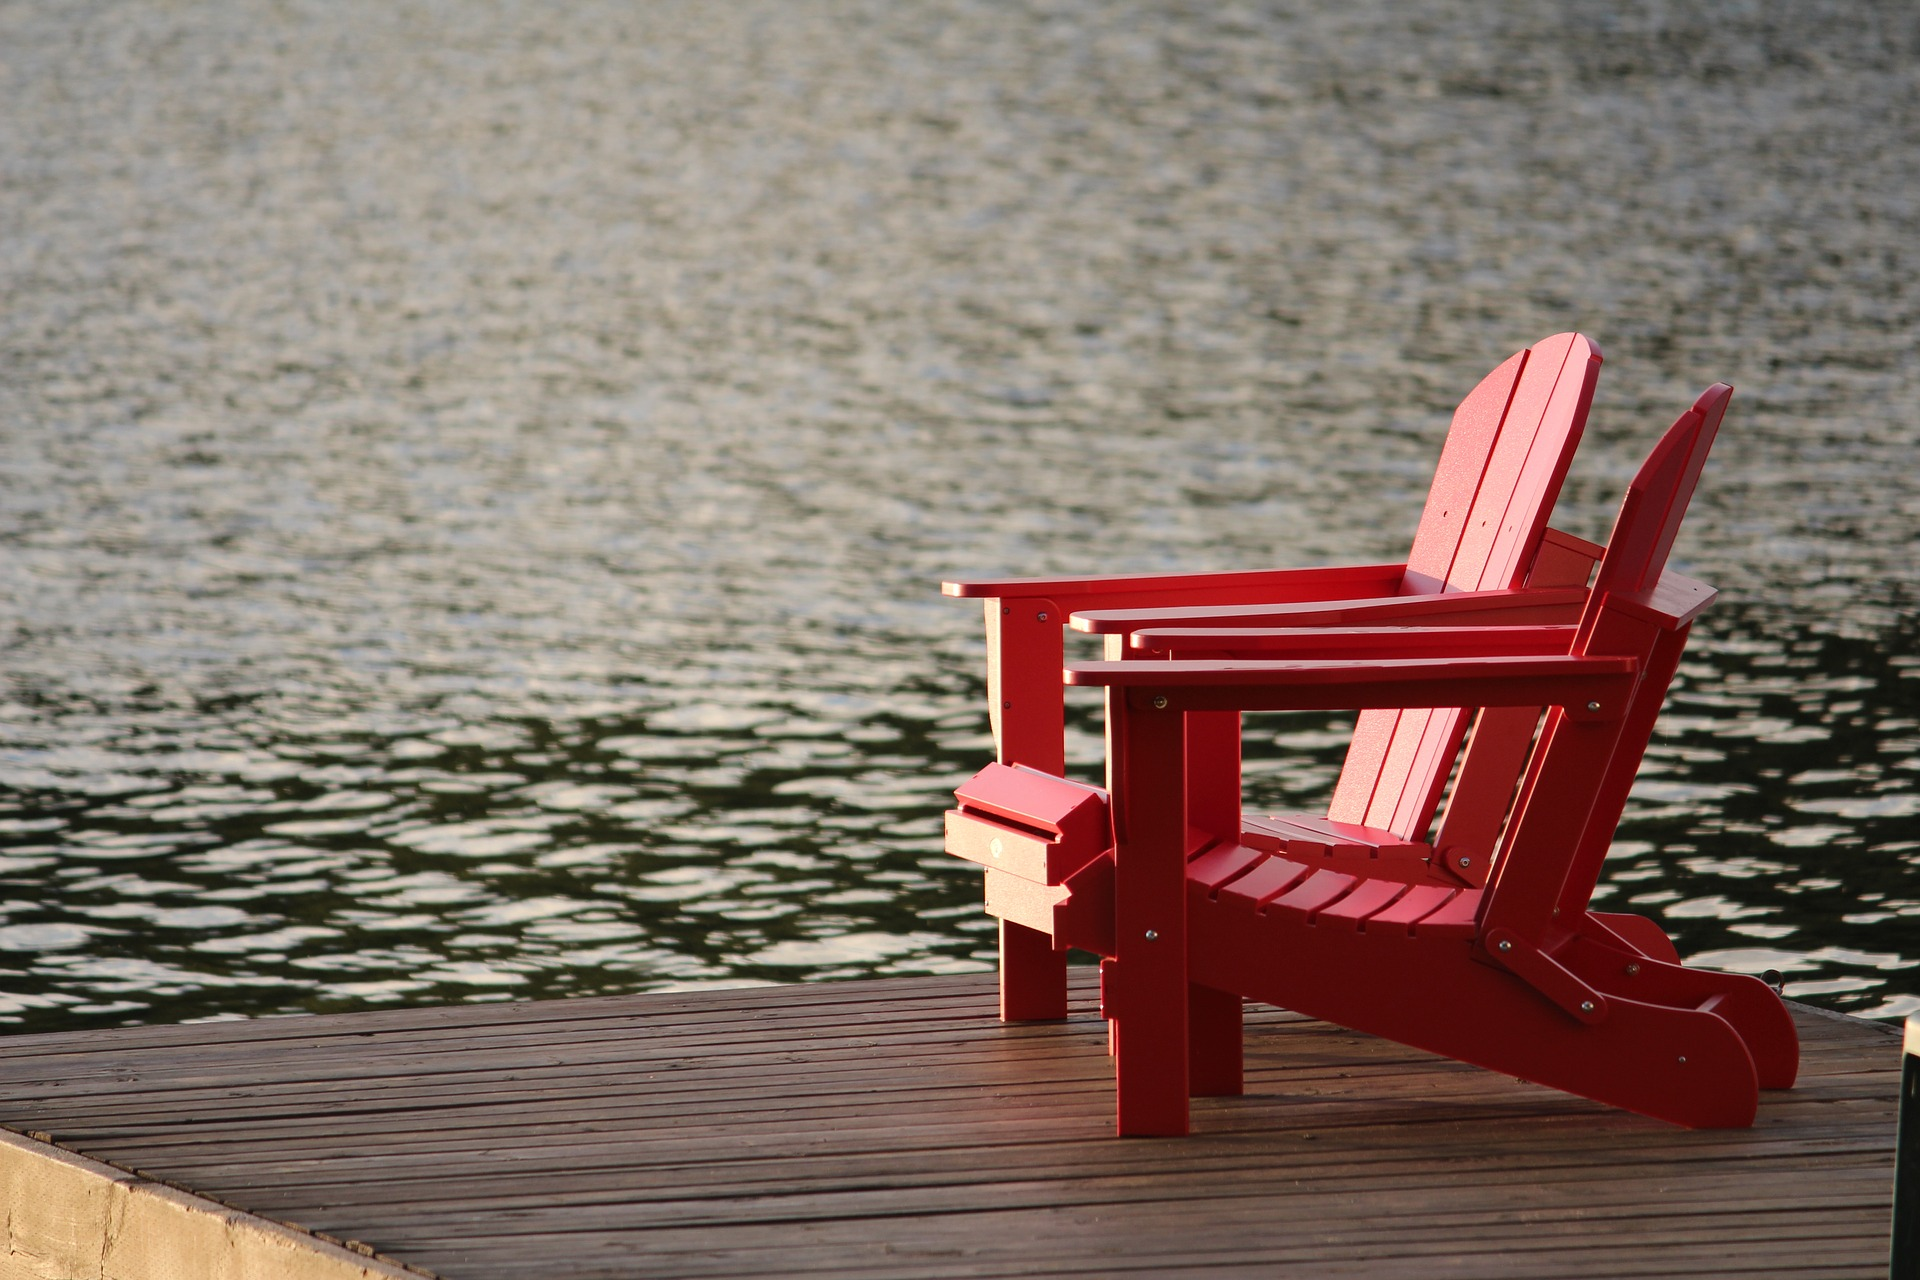 two empty chairs on a dock by the lake giving a retirement feel